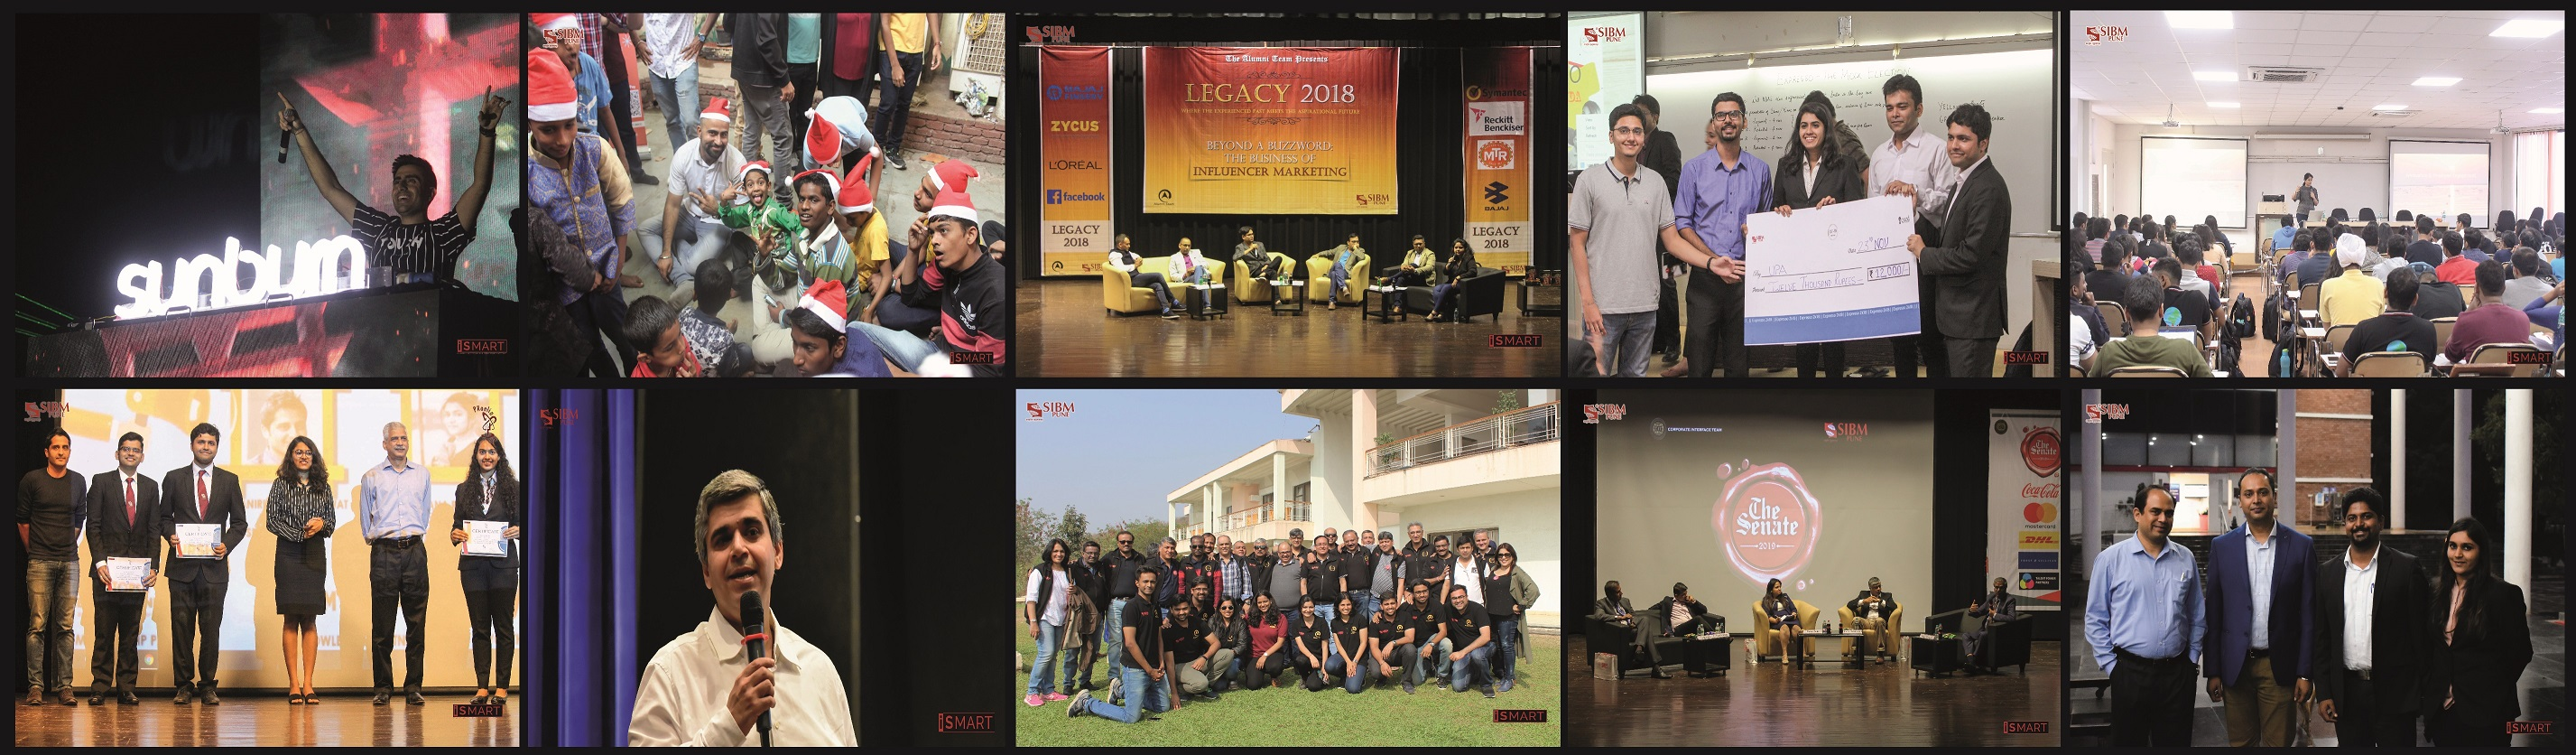 events - sibm pune